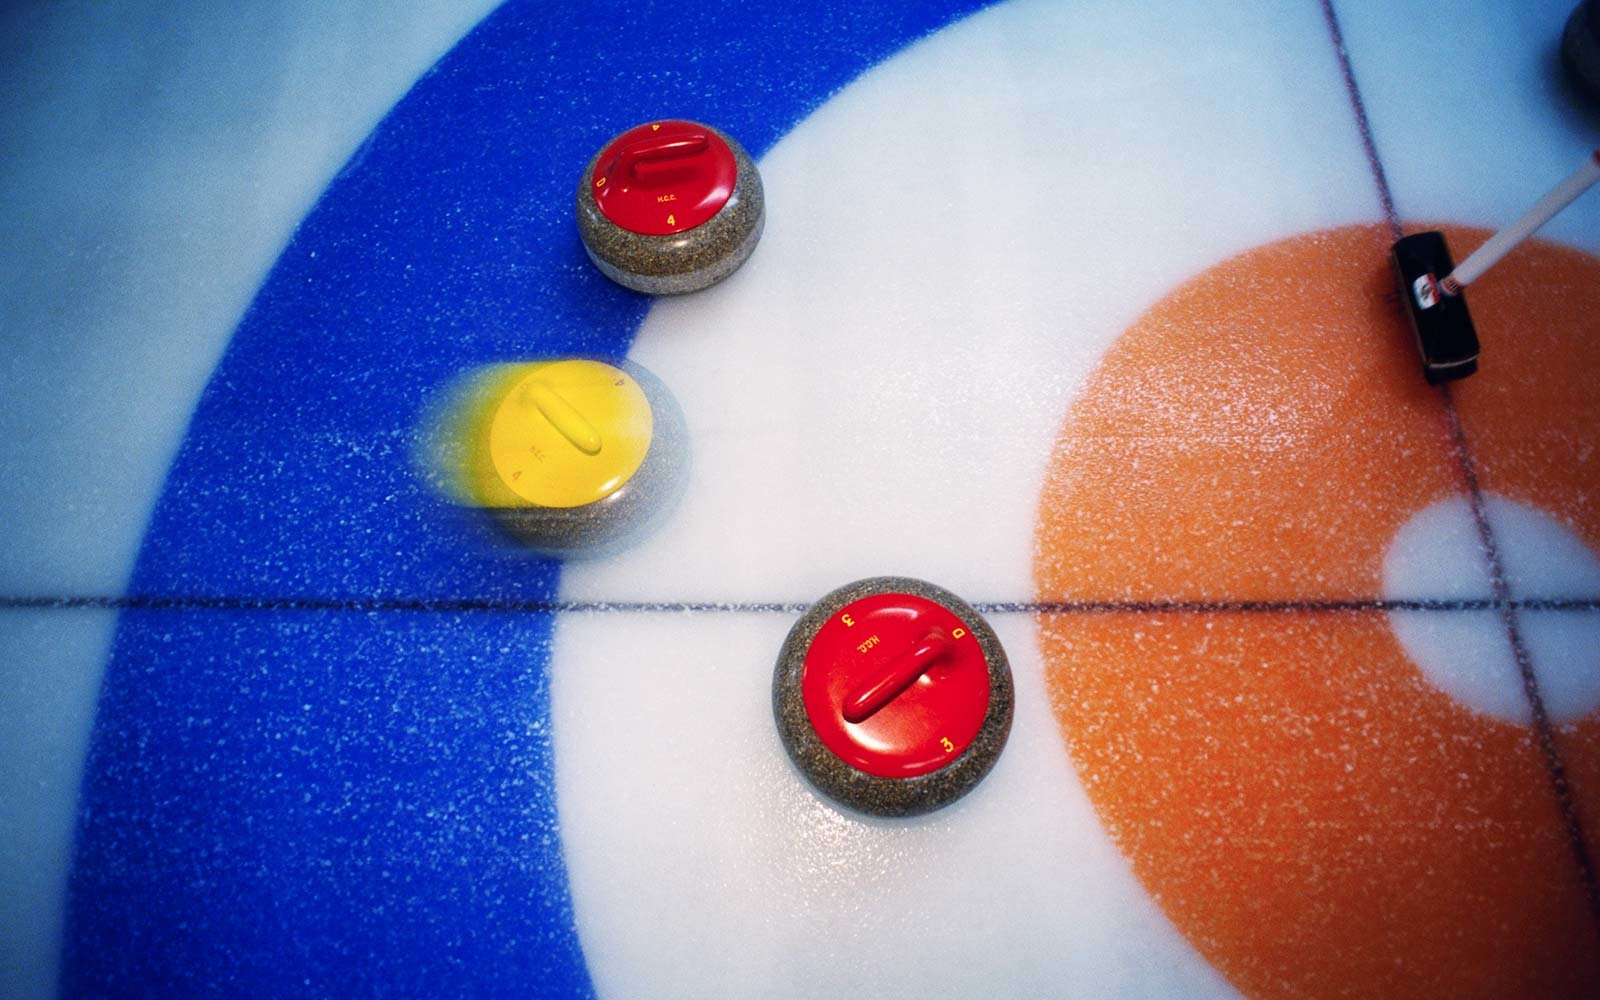 Take up curling in Los Angeles